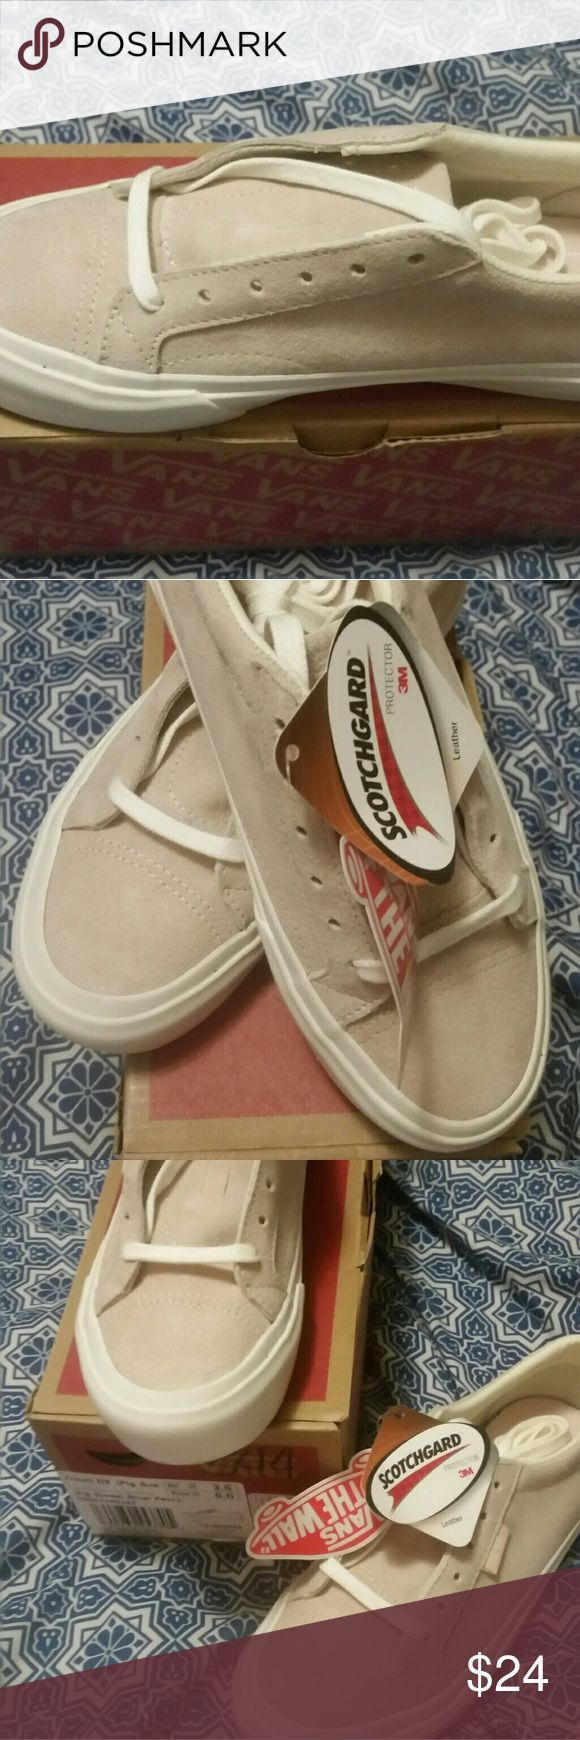 Vans **Brand New** in box, suede silverish, pink unisex Vans skate shoe. Have not been worn except tried on. Original price was $64.95, dropped down to $24.49. They're too small for my daughter and they are sold out, plus, we'd rather Posh! Price is FIRM at $24. Vans Shoes Sneakers